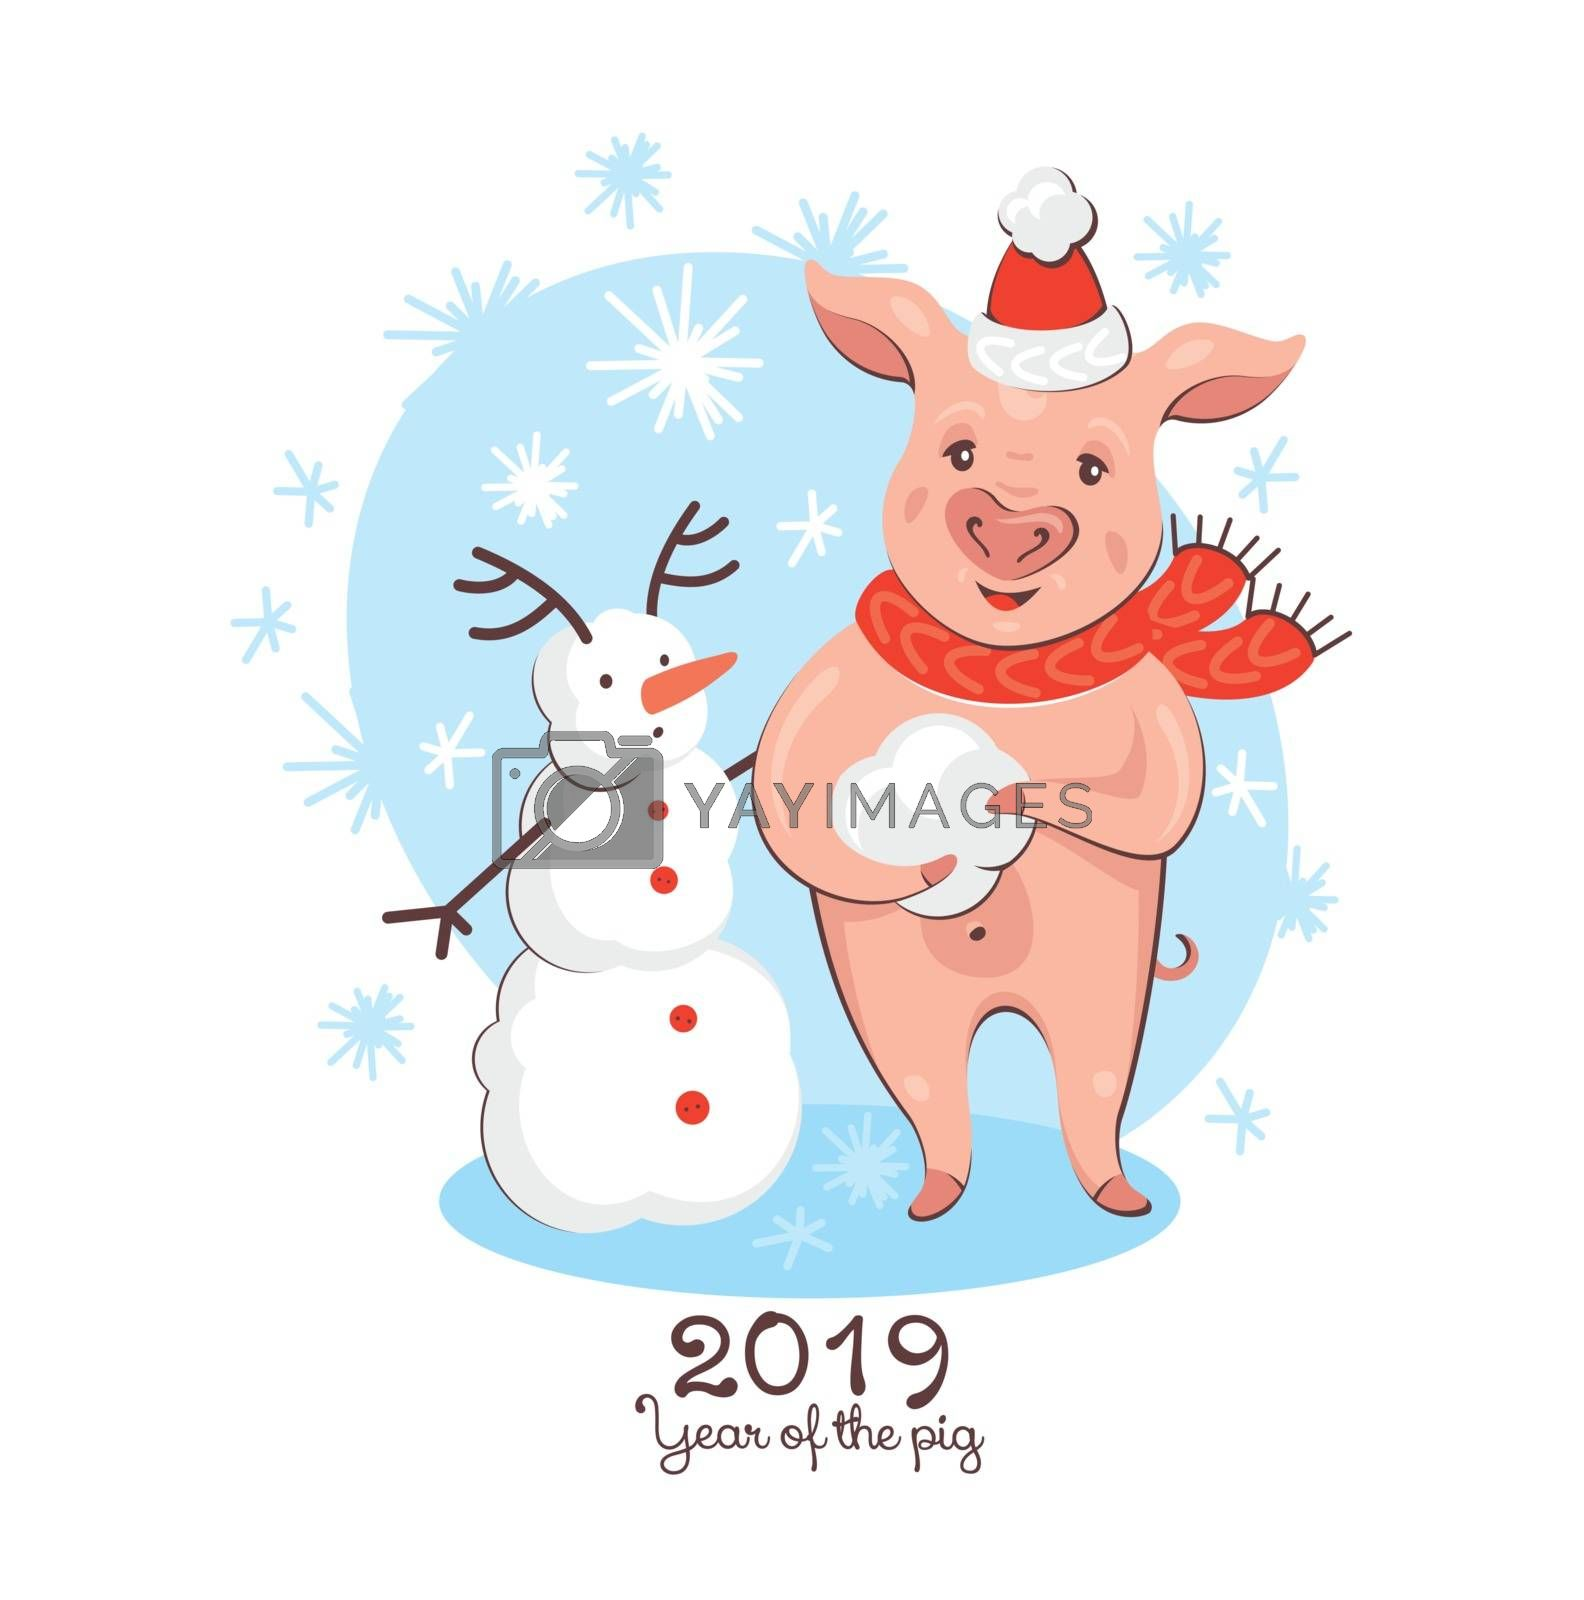 2019 New Year greeting card with pig and snowman. Year of the pig. Vector illustration.